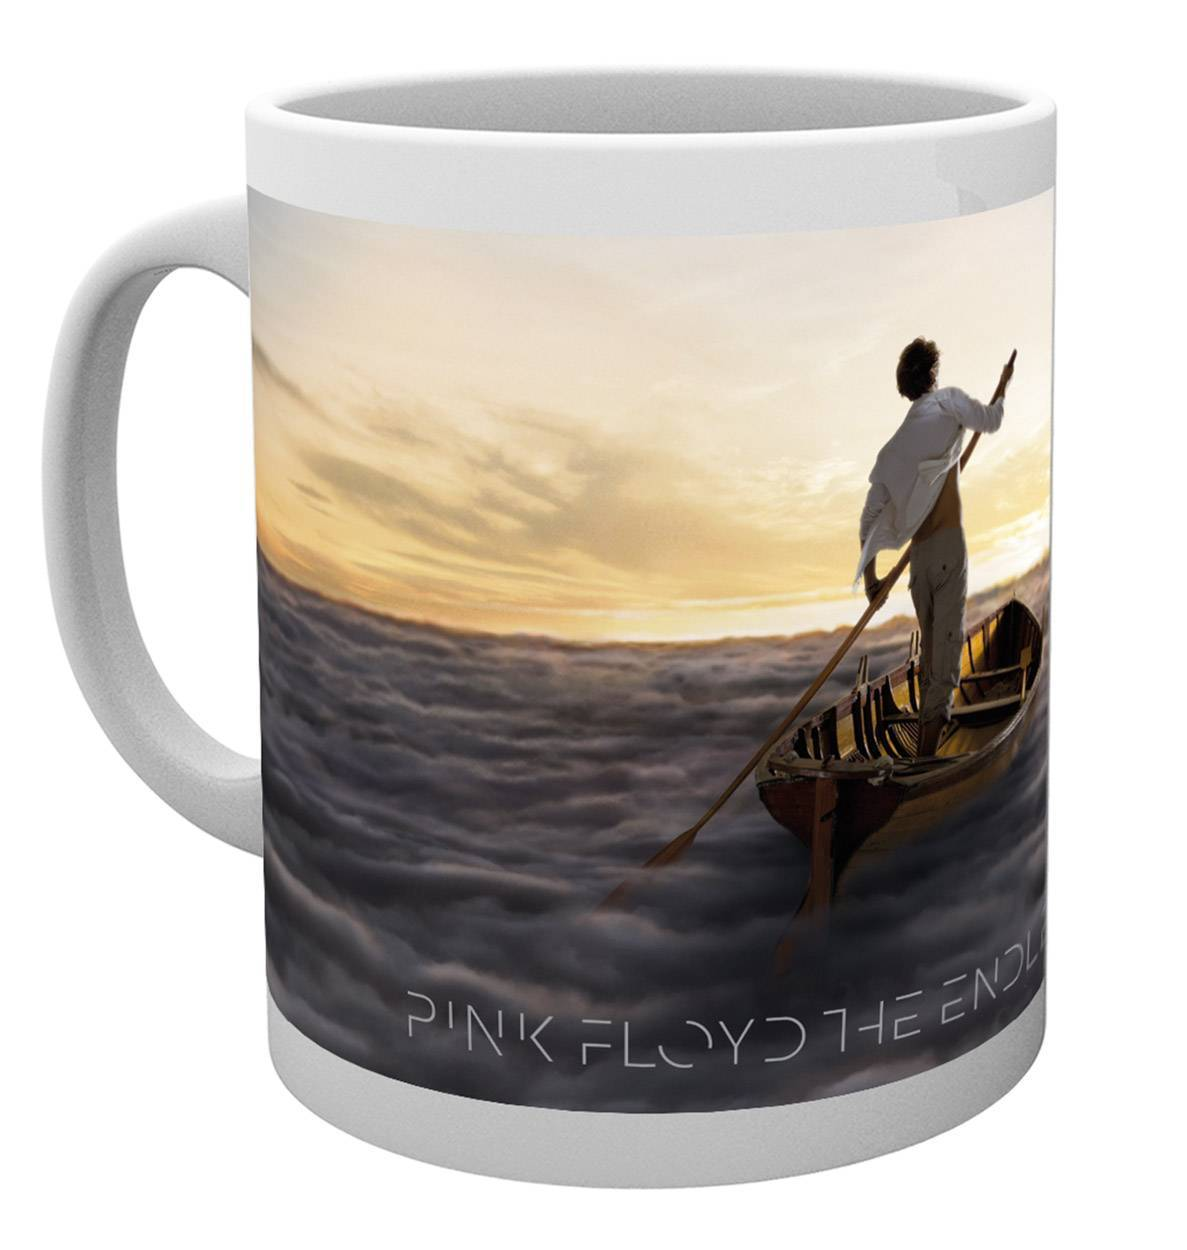 Pink Floyd The Endless River Mug